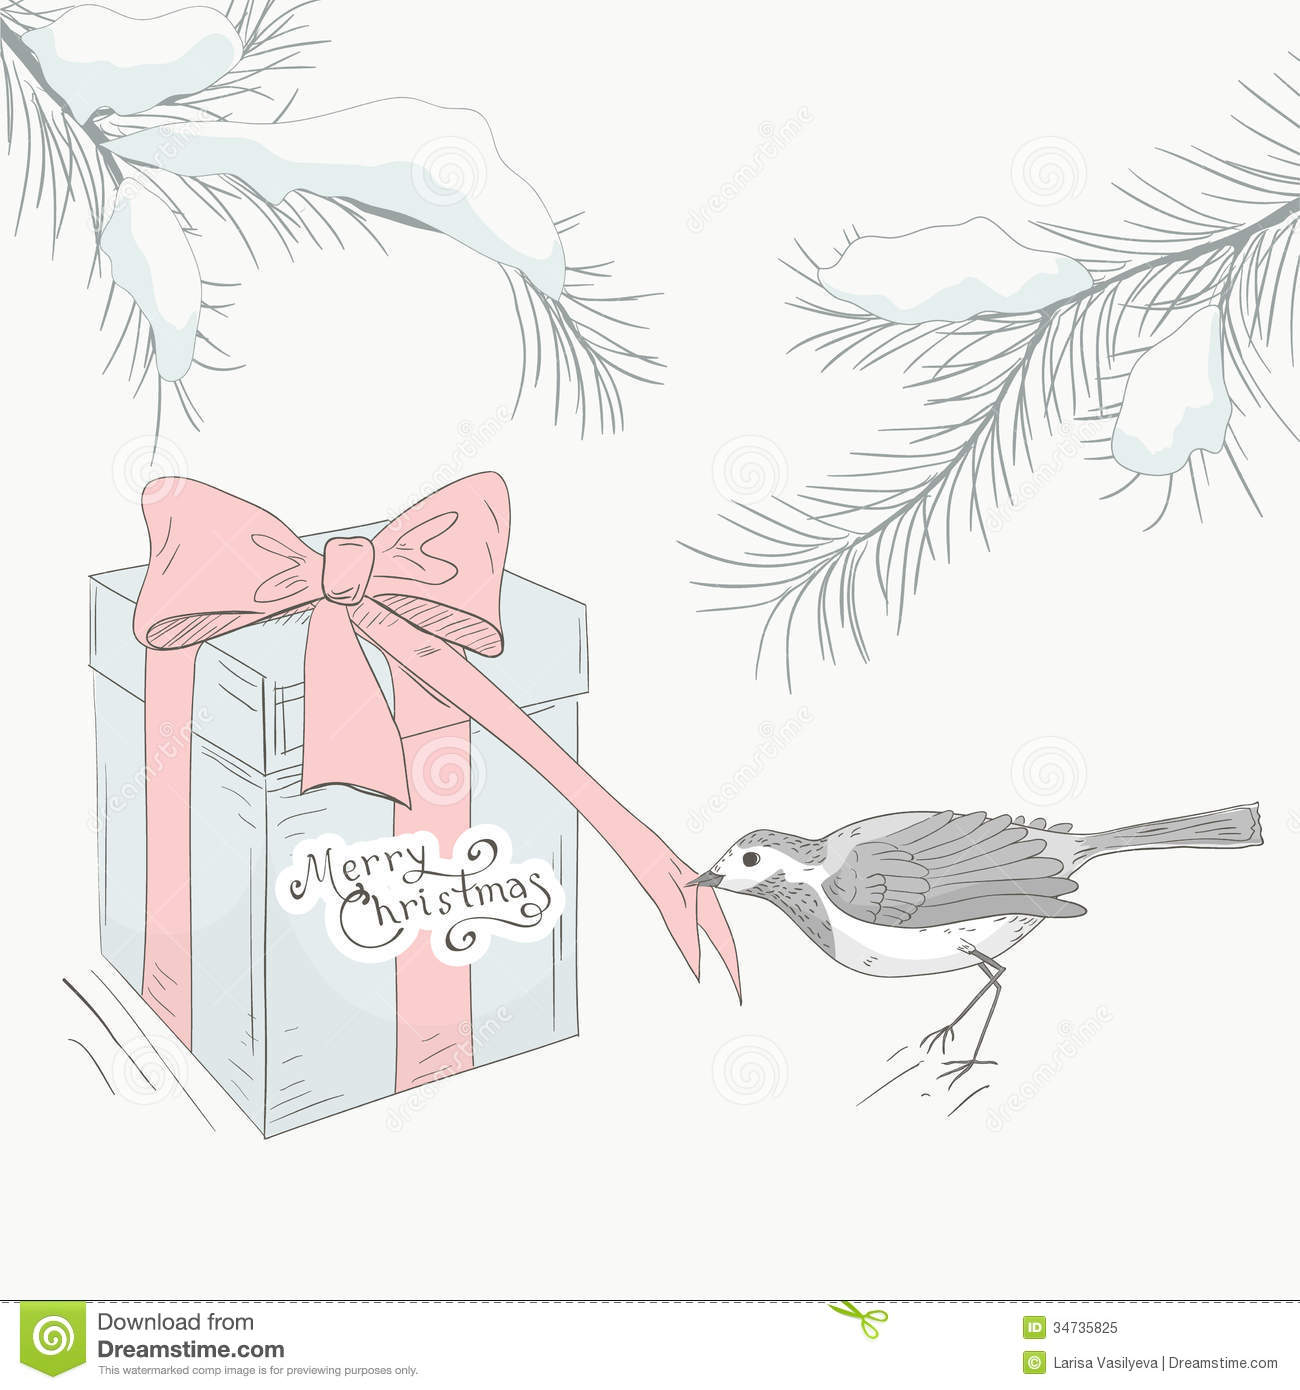 Greeting Card With Bird 3 Royalty Free Stock Photo Image